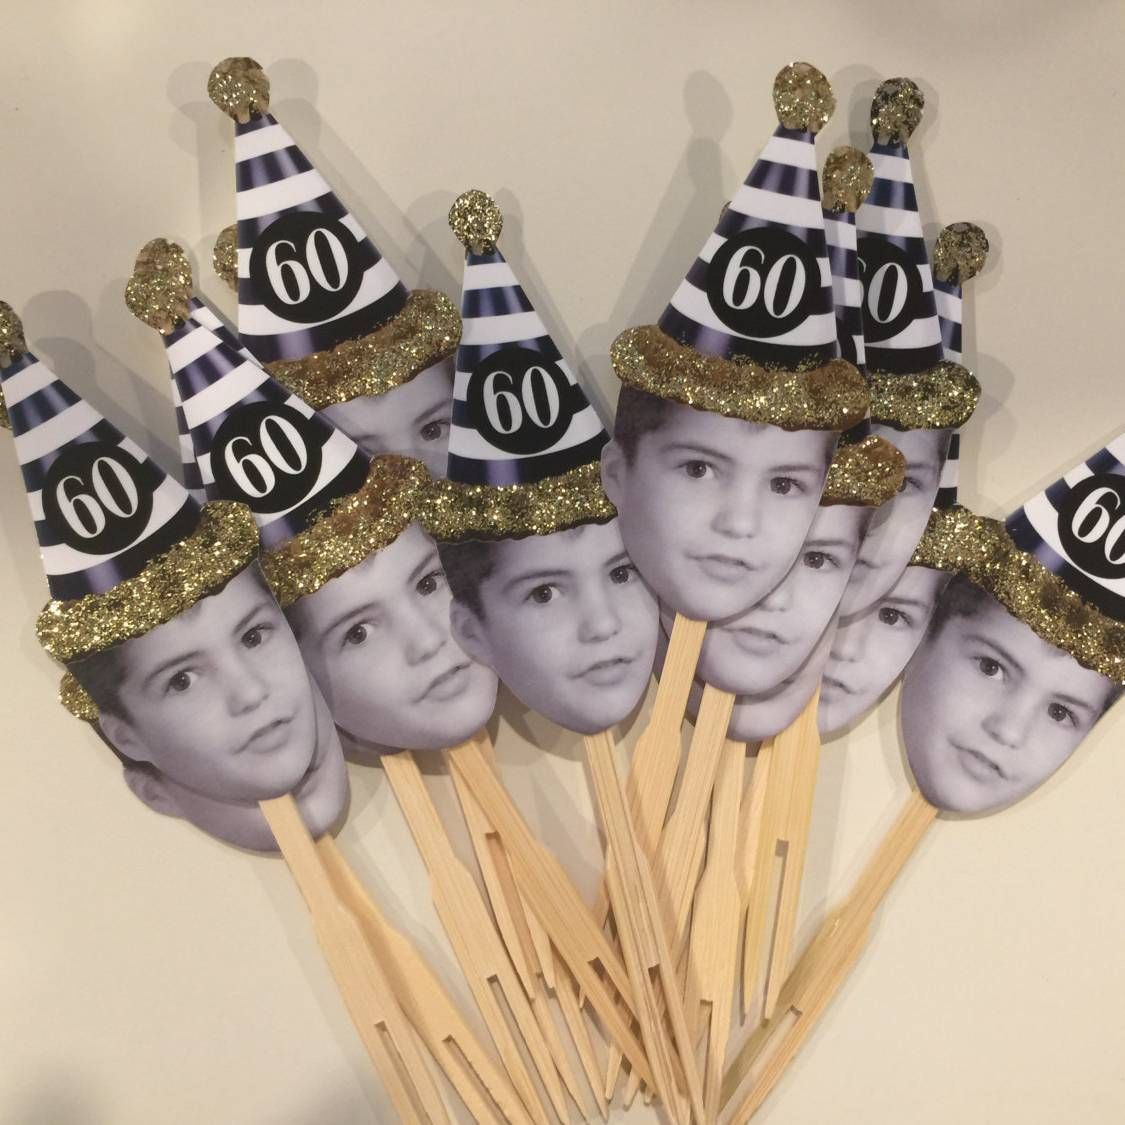 100+ Creative 60th Birthday Ideas for Men —by a